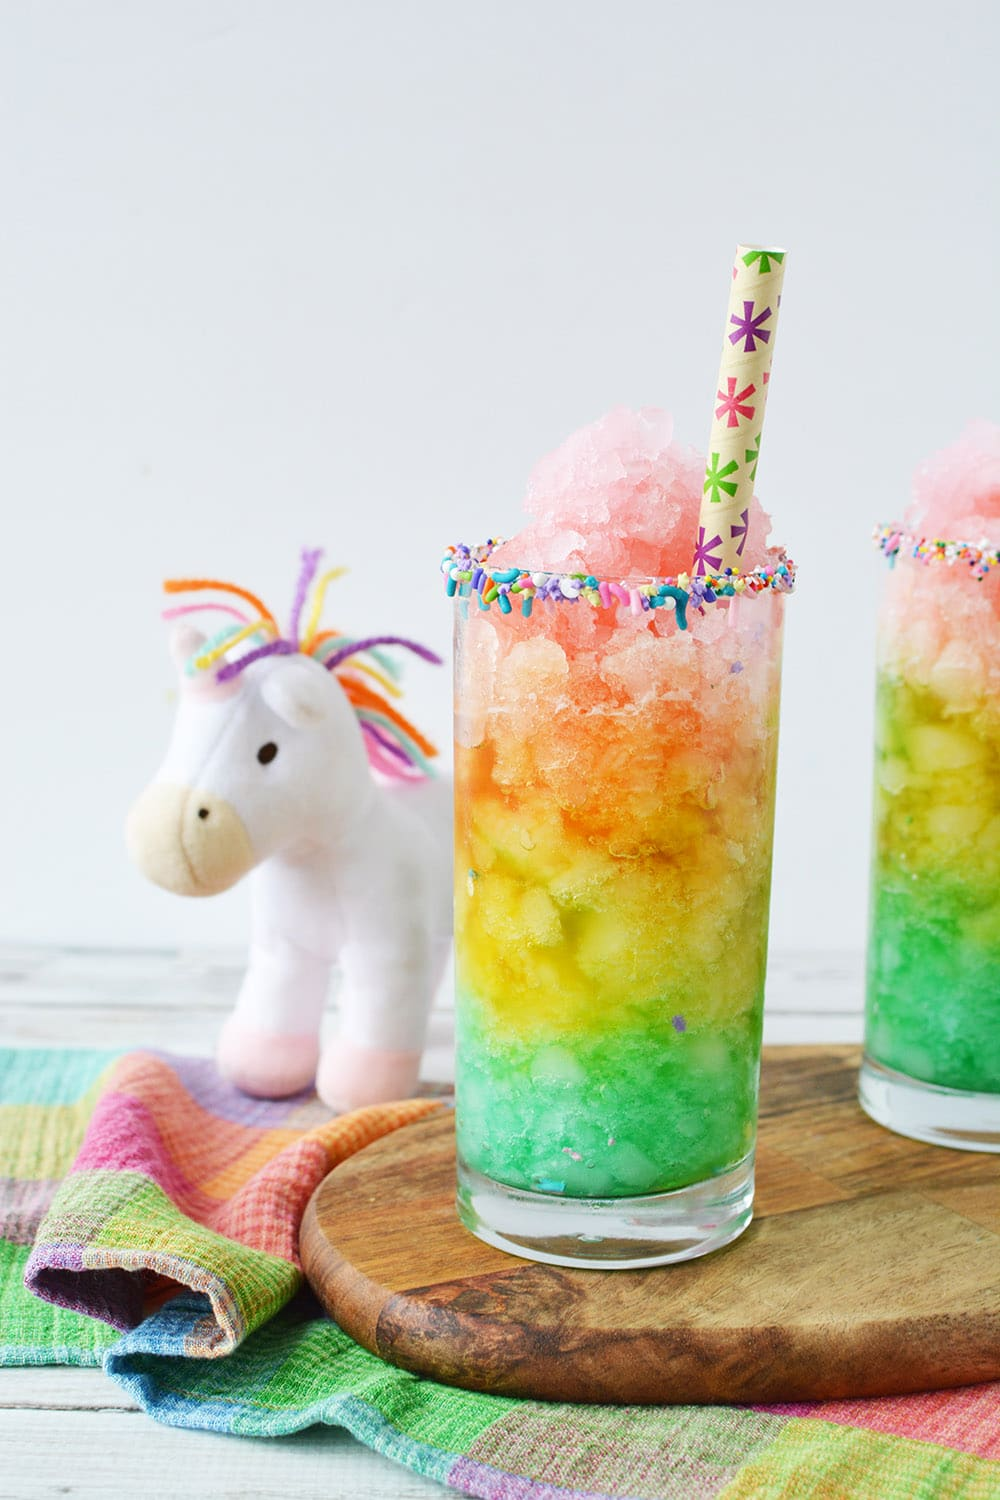 Rainbow slush next to a unicorn plush toy